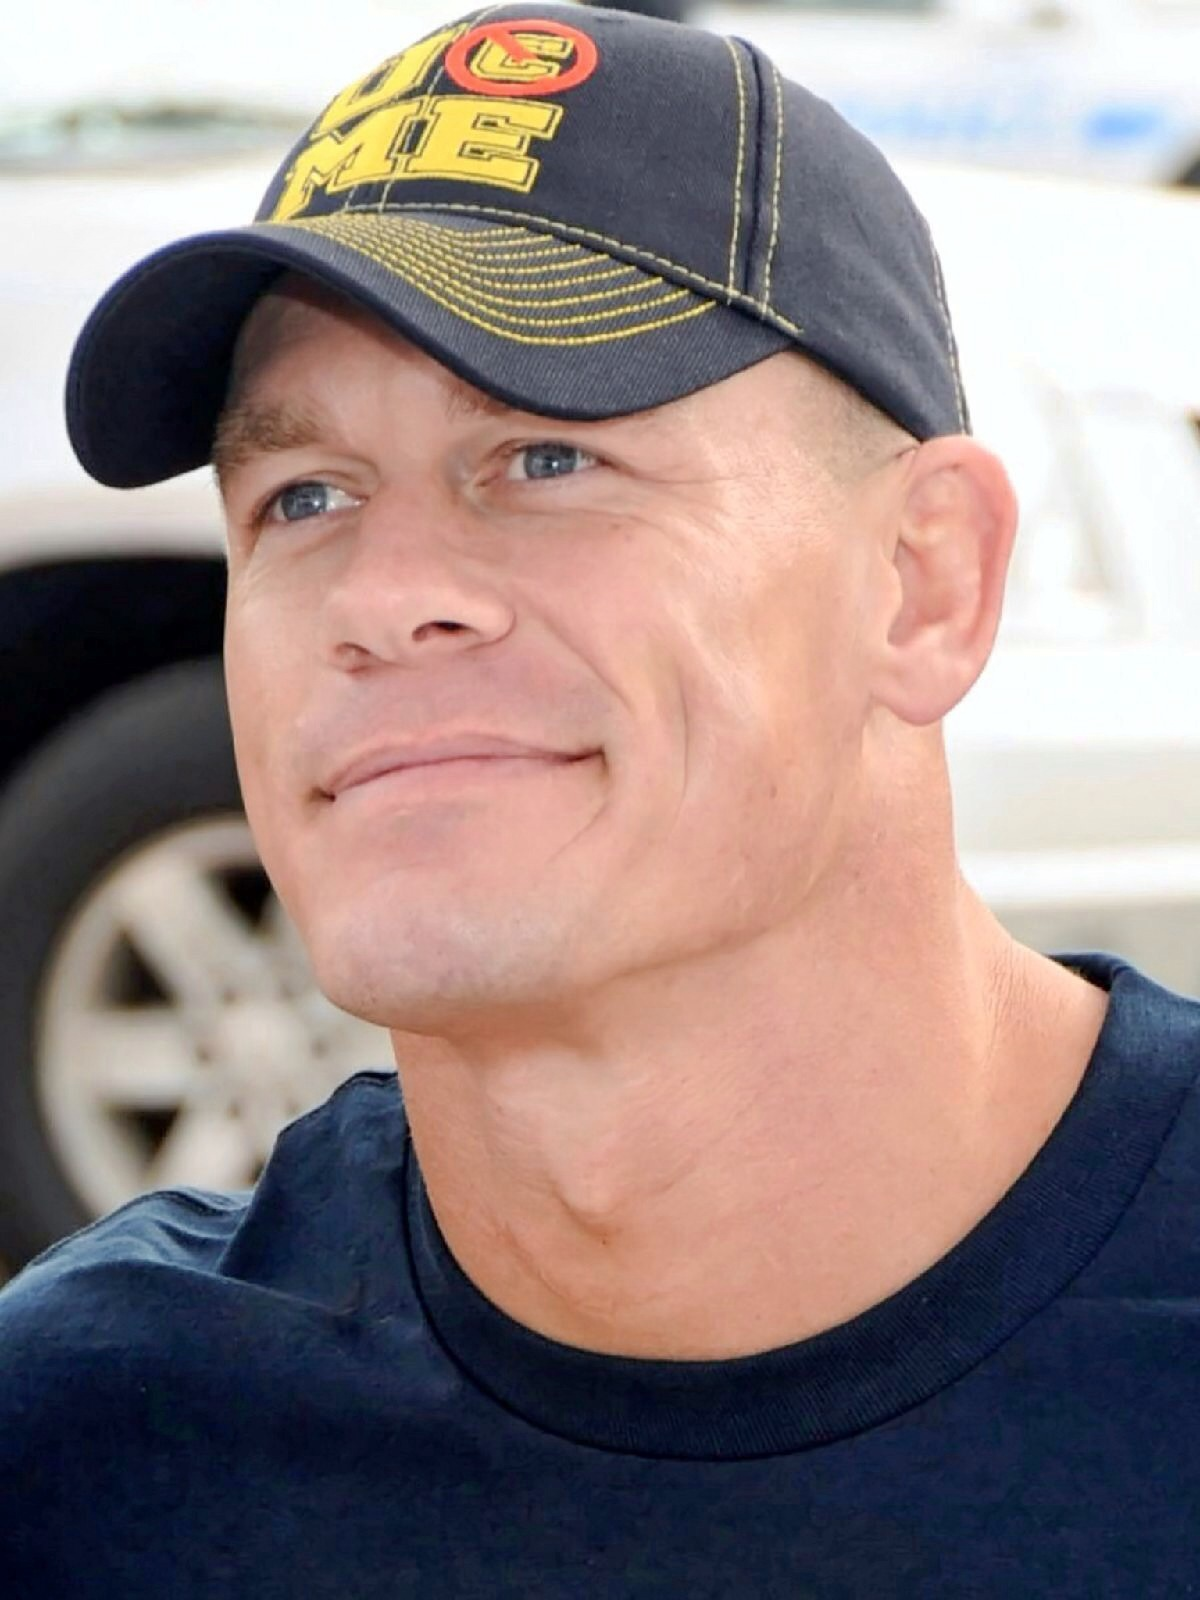 John Cena - Wikipedia, the free encyclopedia